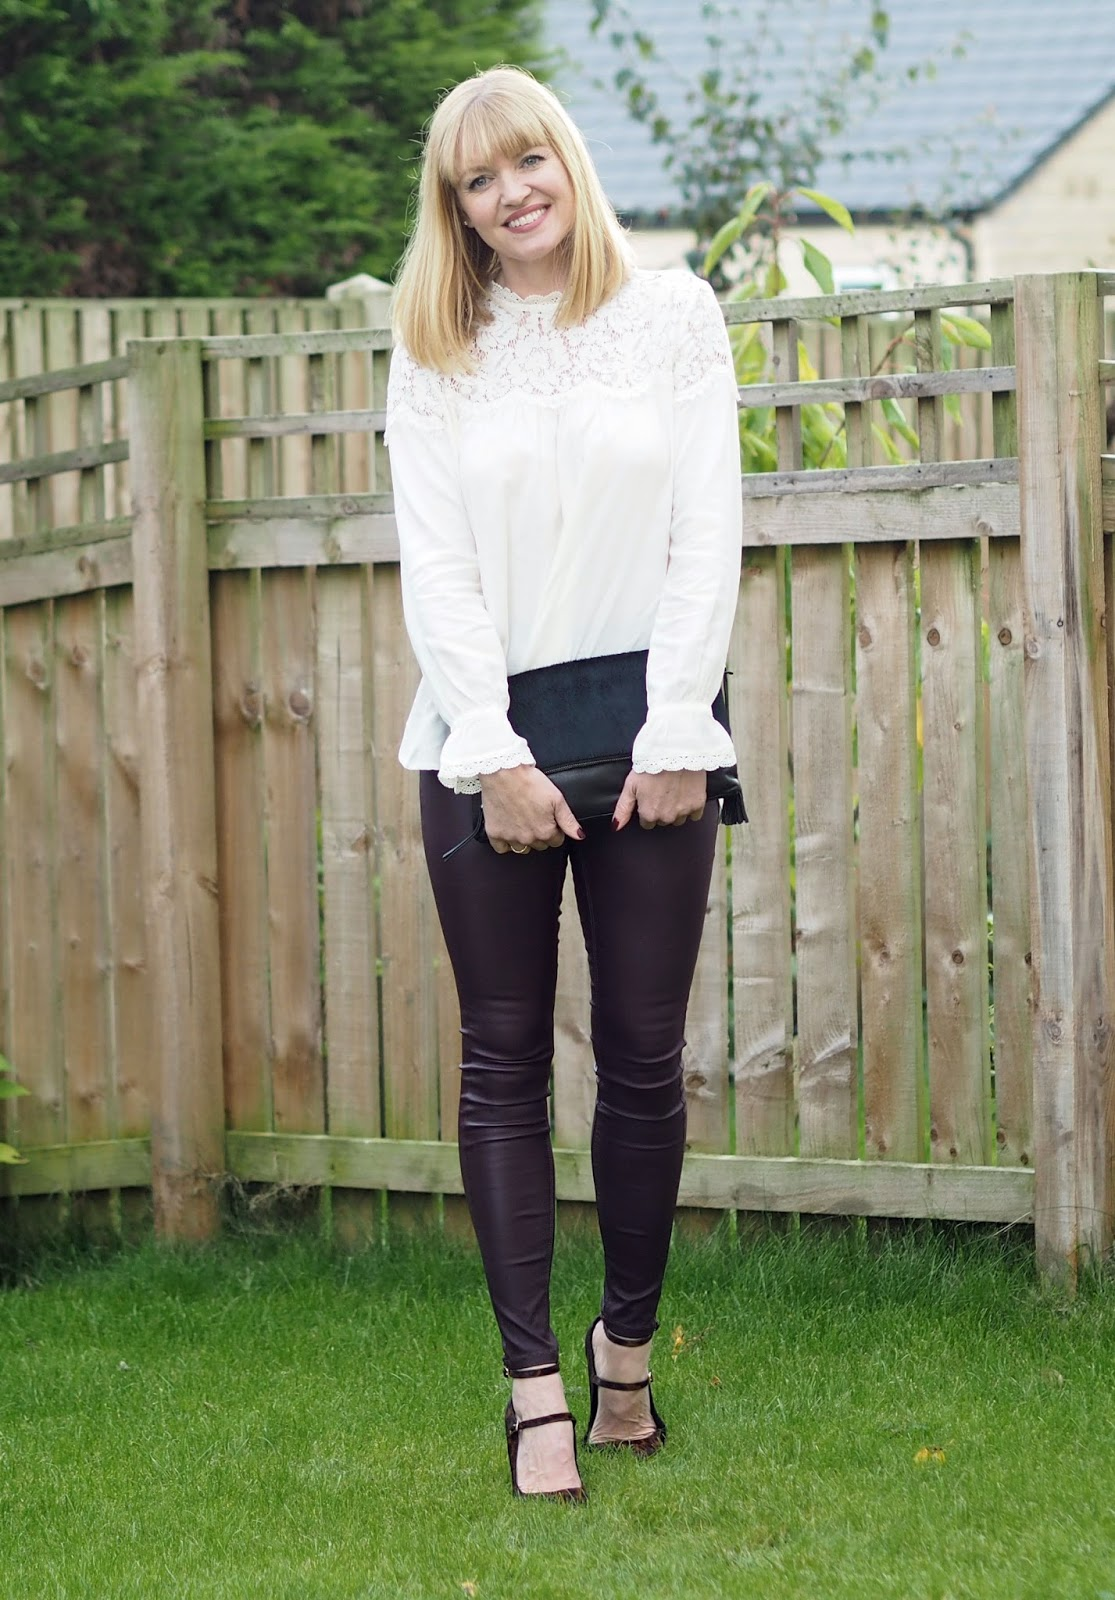 Marks and spencer romantic lace blouse, coated leggings and strappy leopard print shoes